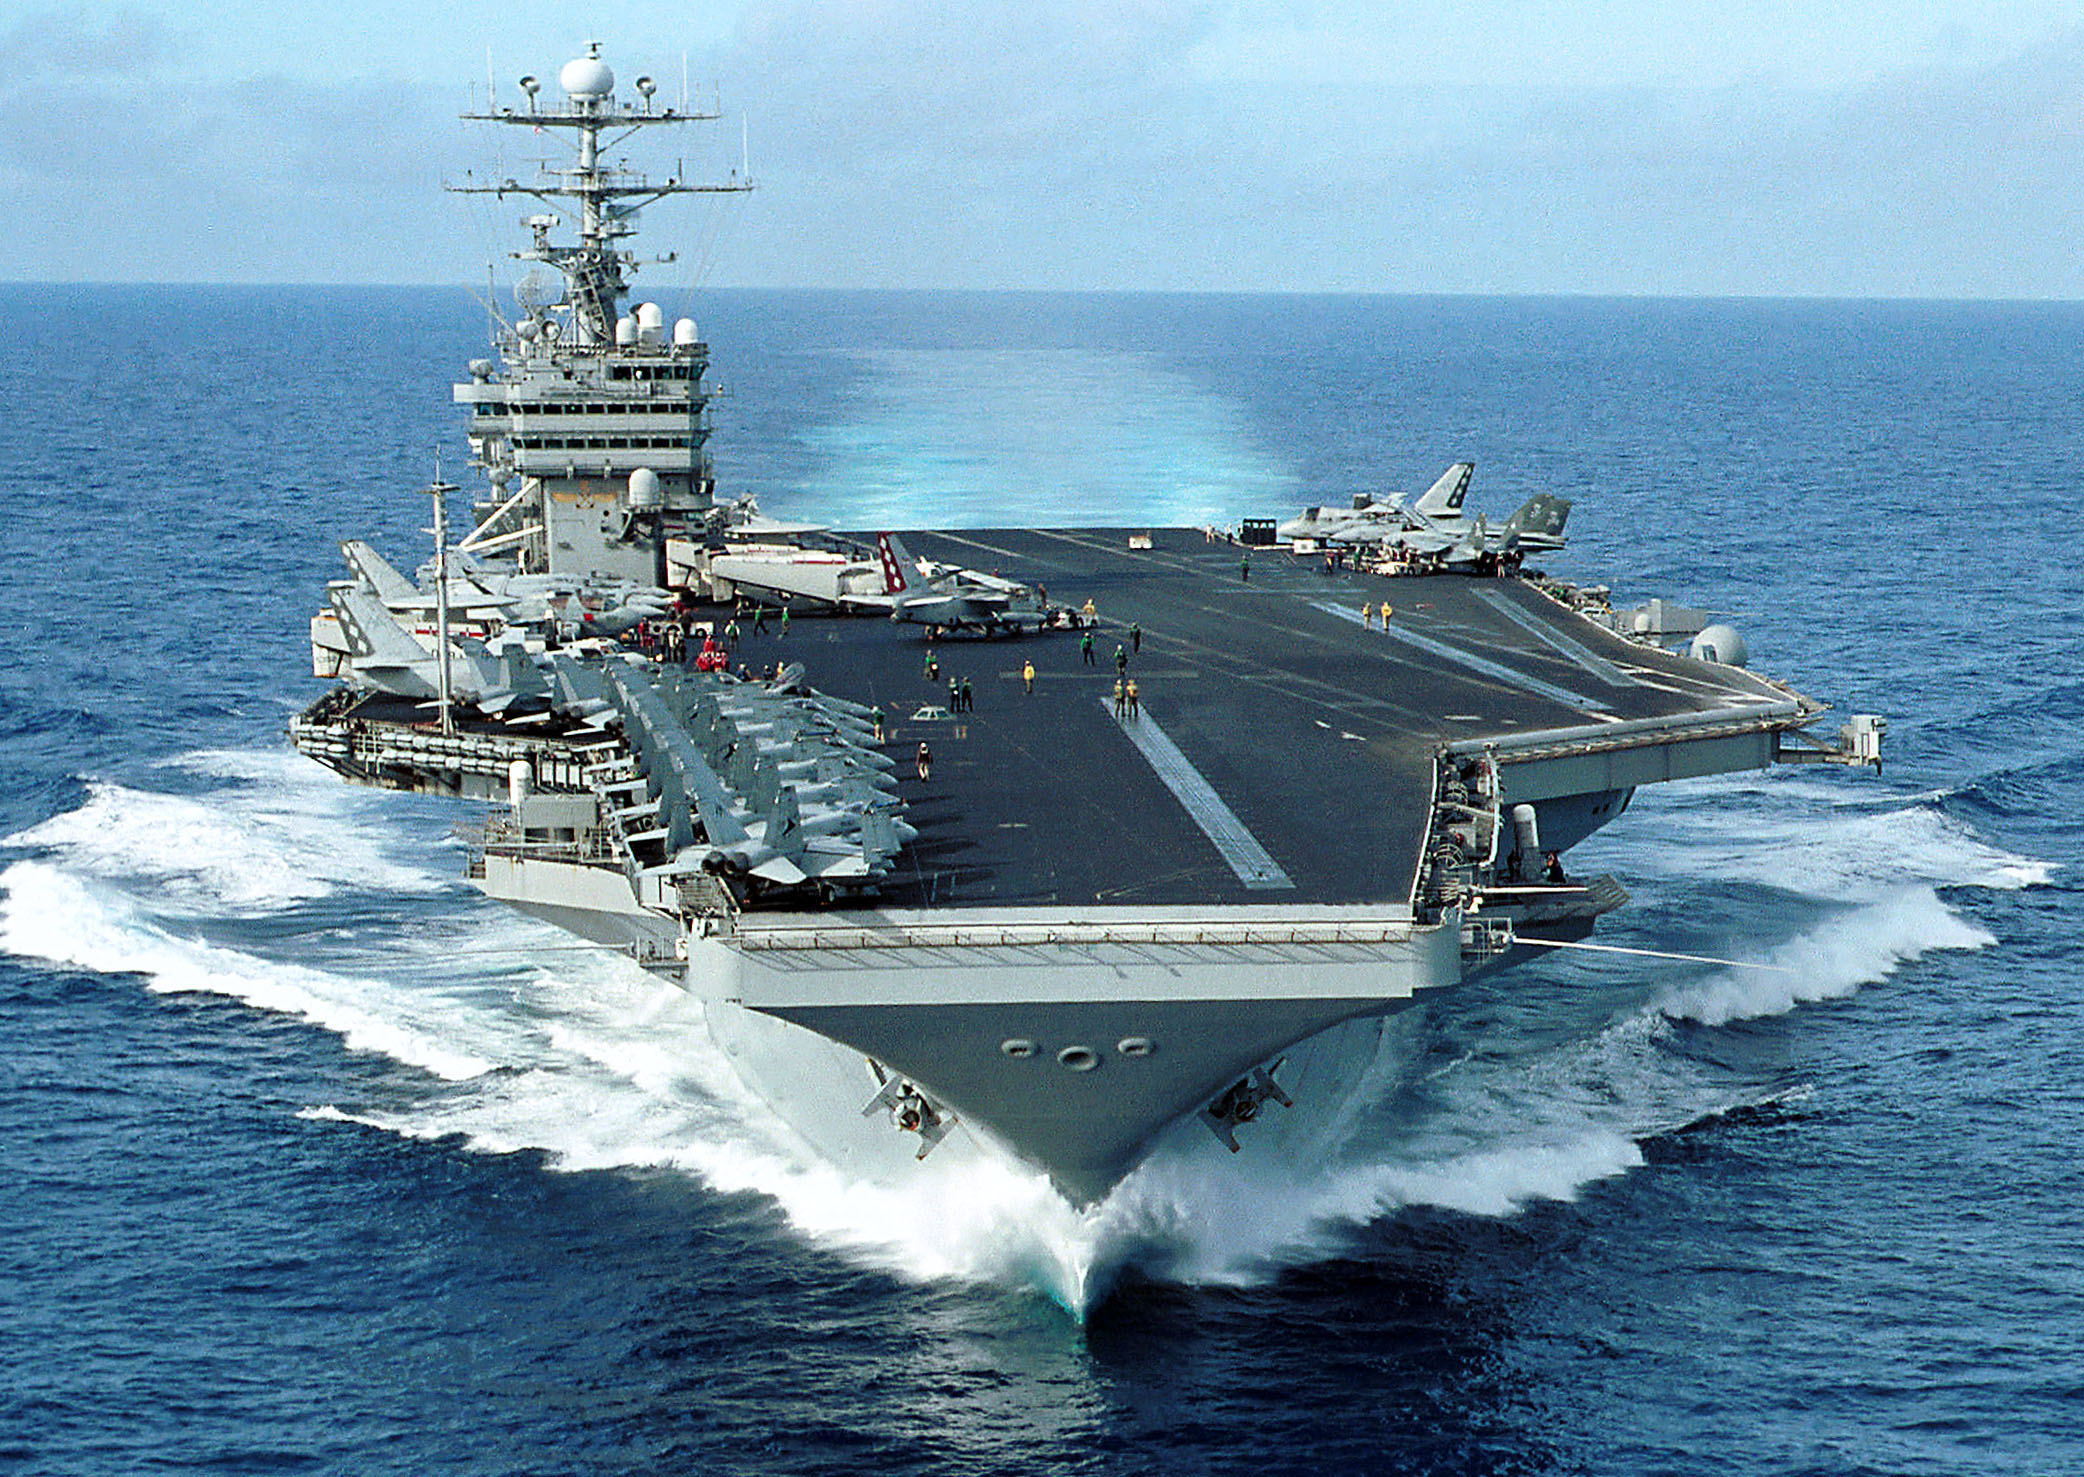 https://upload.wikimedia.org/wikipedia/commons/9/93/US_Navy_020928-N-3653A-001_The_nuclear-powered_aircraft_carrier_USS_George_Washington_(CVN_73)_transits_the_Atlantic_Ocean.jpg